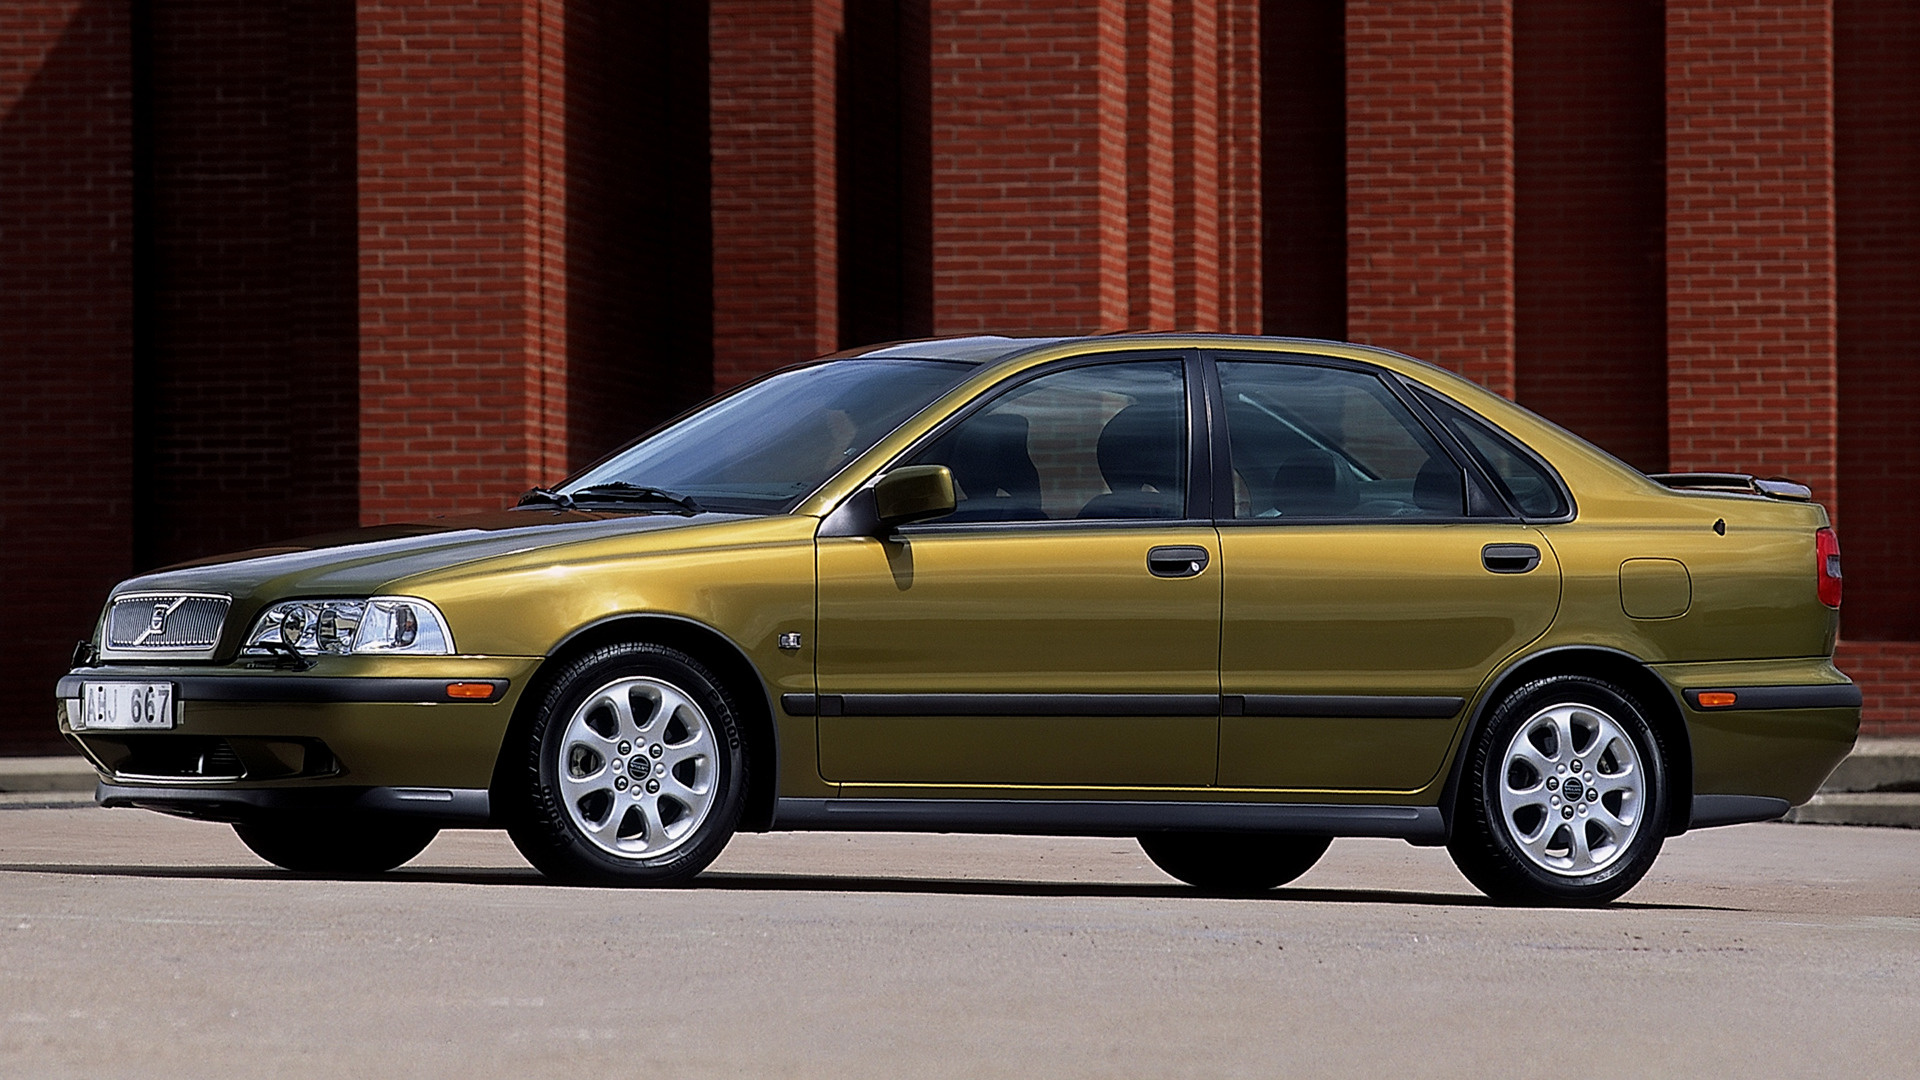 Volvo S40 (1996) Wallpapers and HD Images - Car Pixel